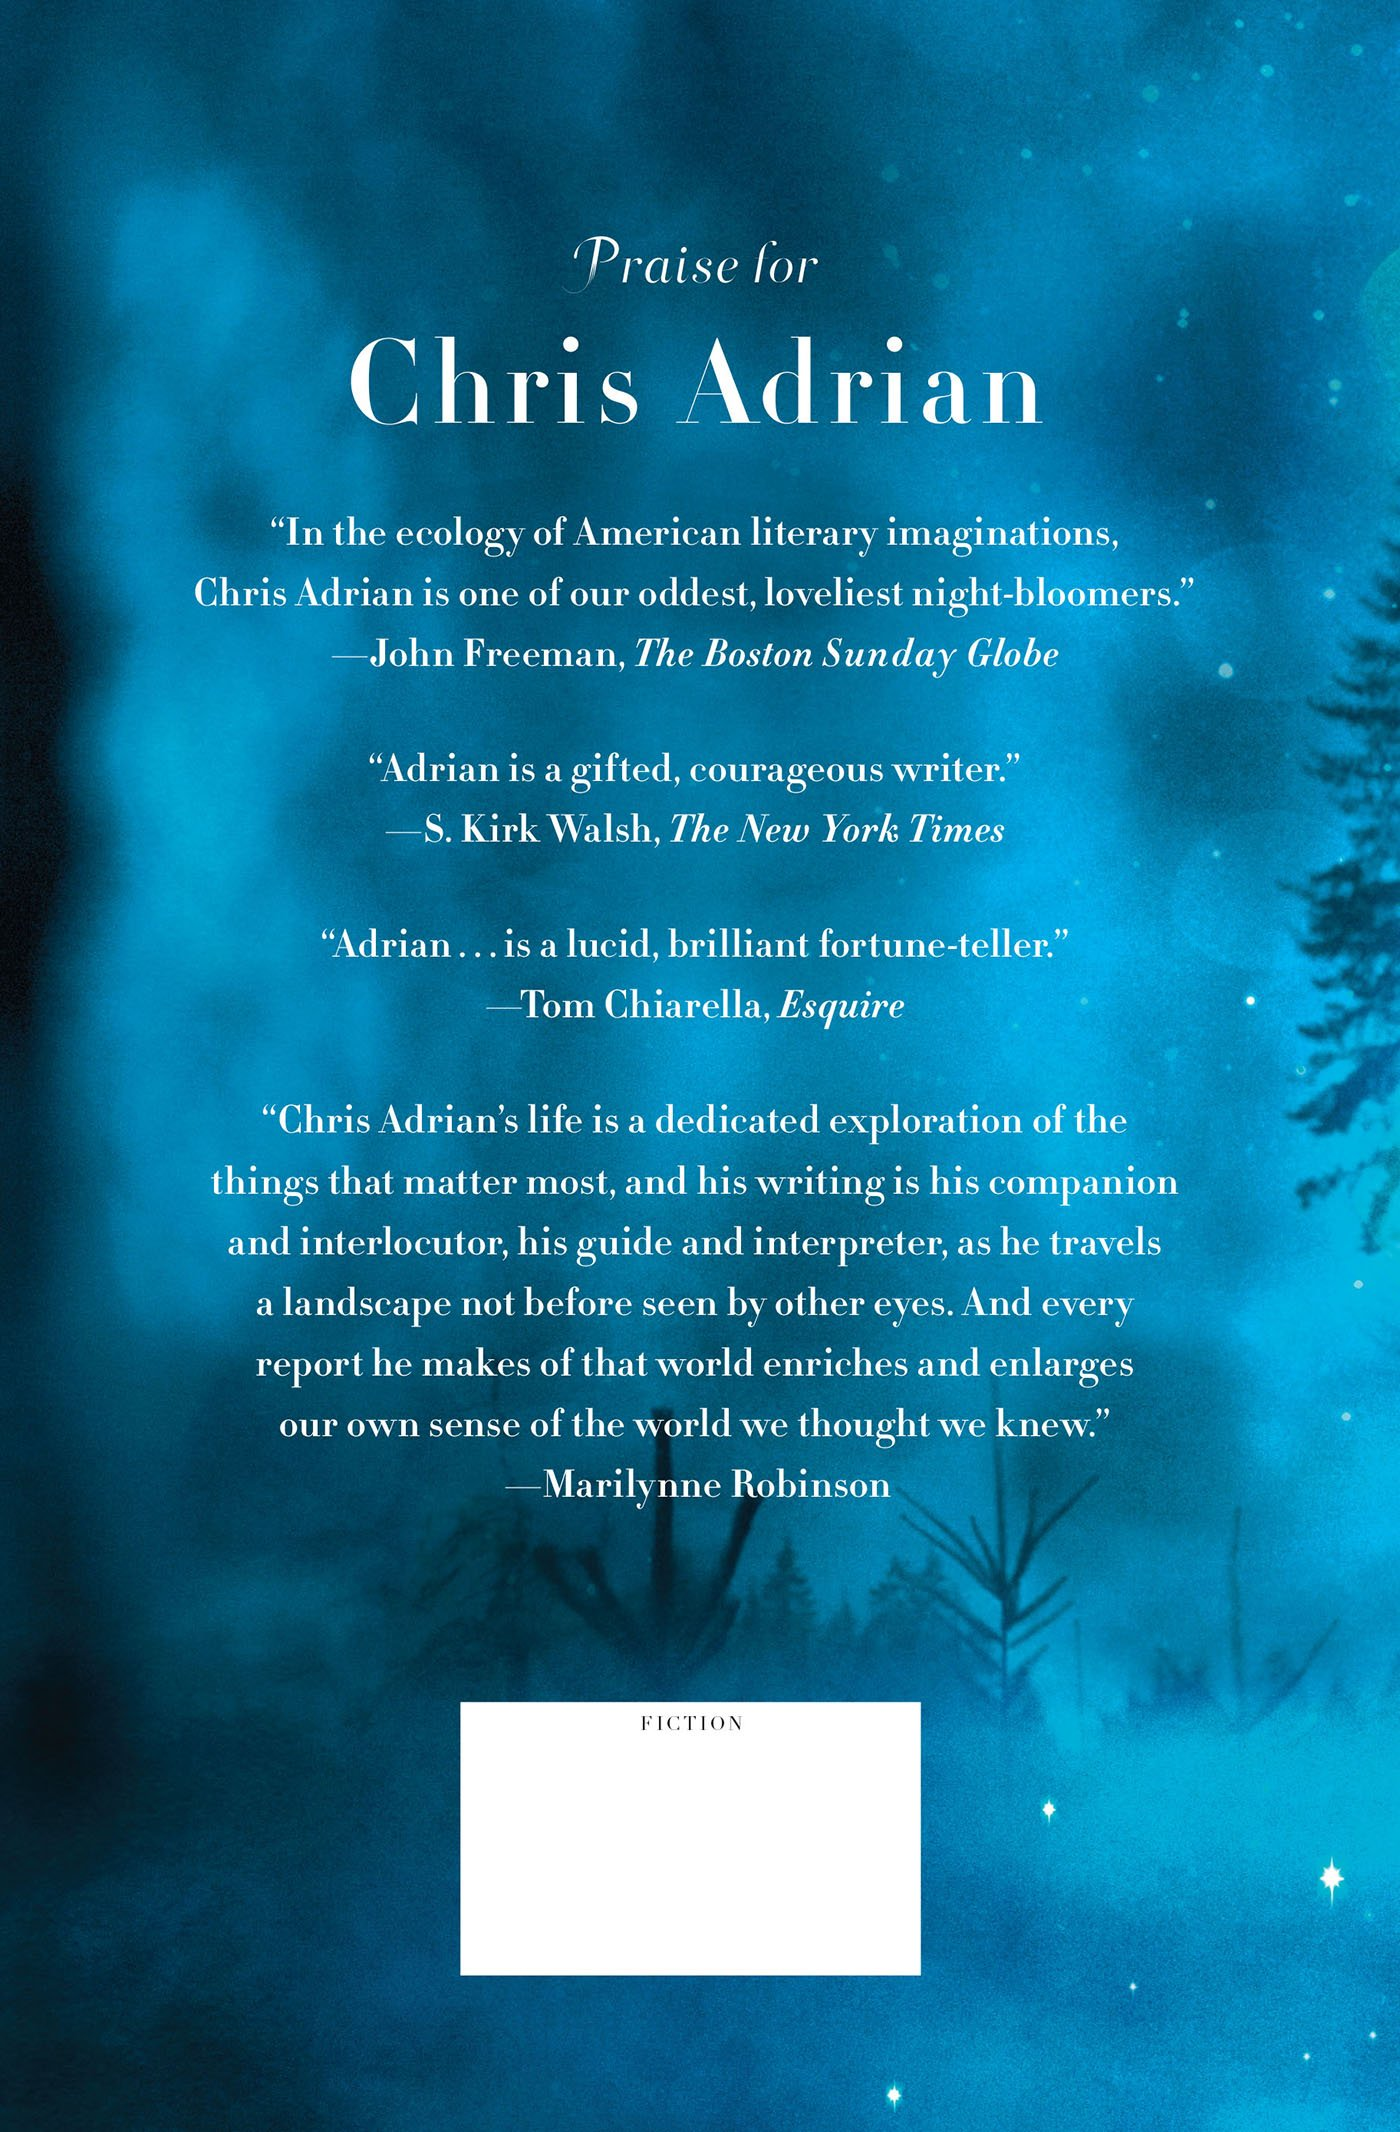 The Great Night: A Novel: Chris Adrian: 9780374166410: Amazon: Books